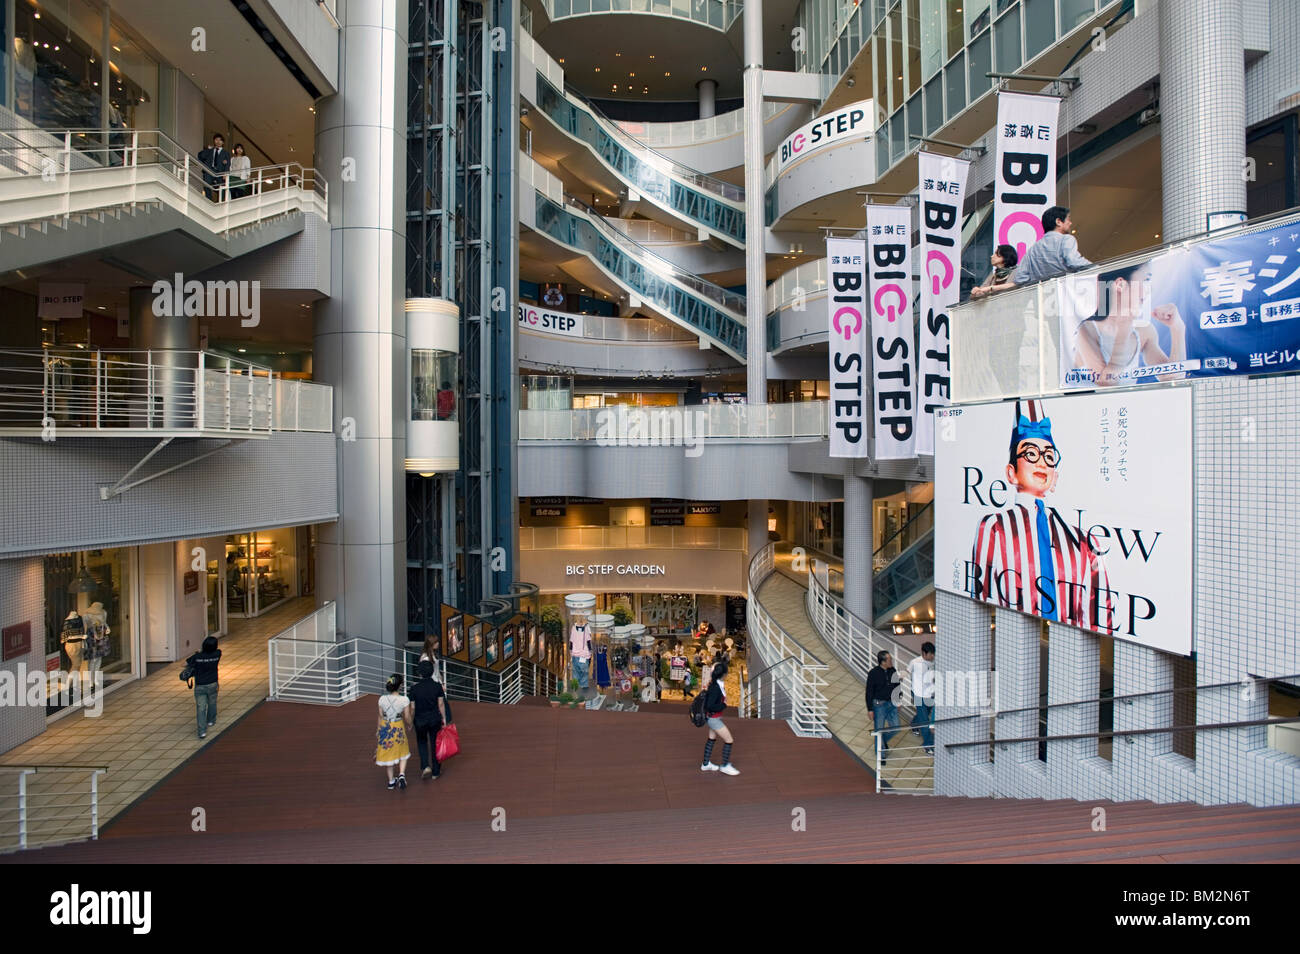 Big Step retail complex in Amerika-mura (American Village), center of youth culture in Osaka, Japan - Stock Image